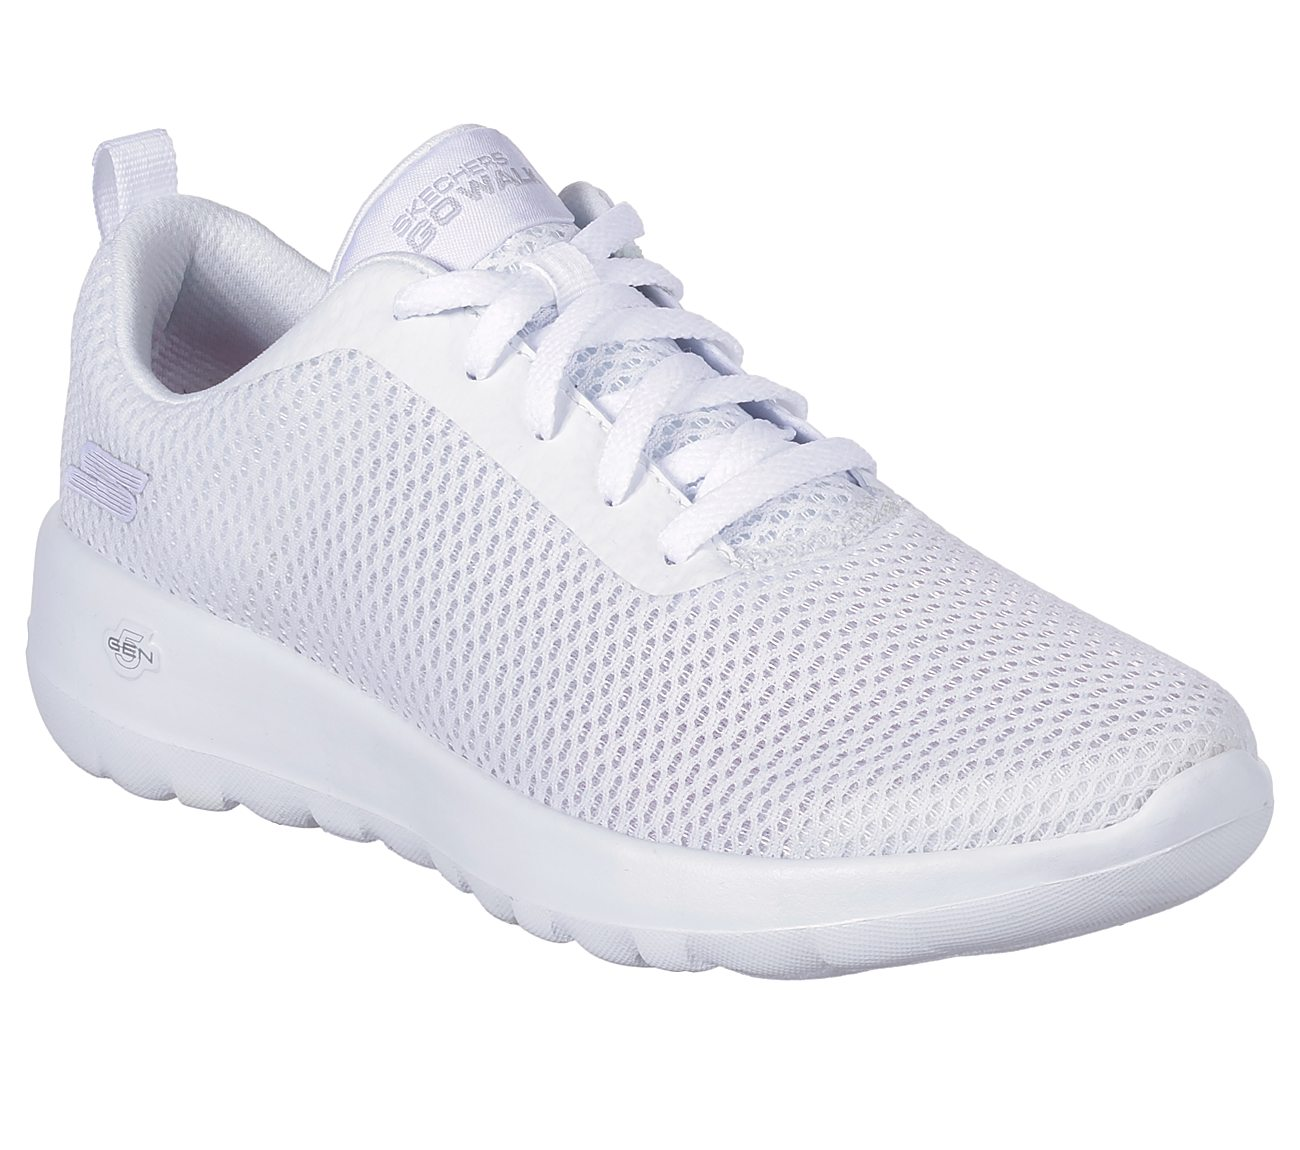 777f041afaf2 Buy SKECHERS Skechers GOwalk Joy - Paradise Skechers Performance ...